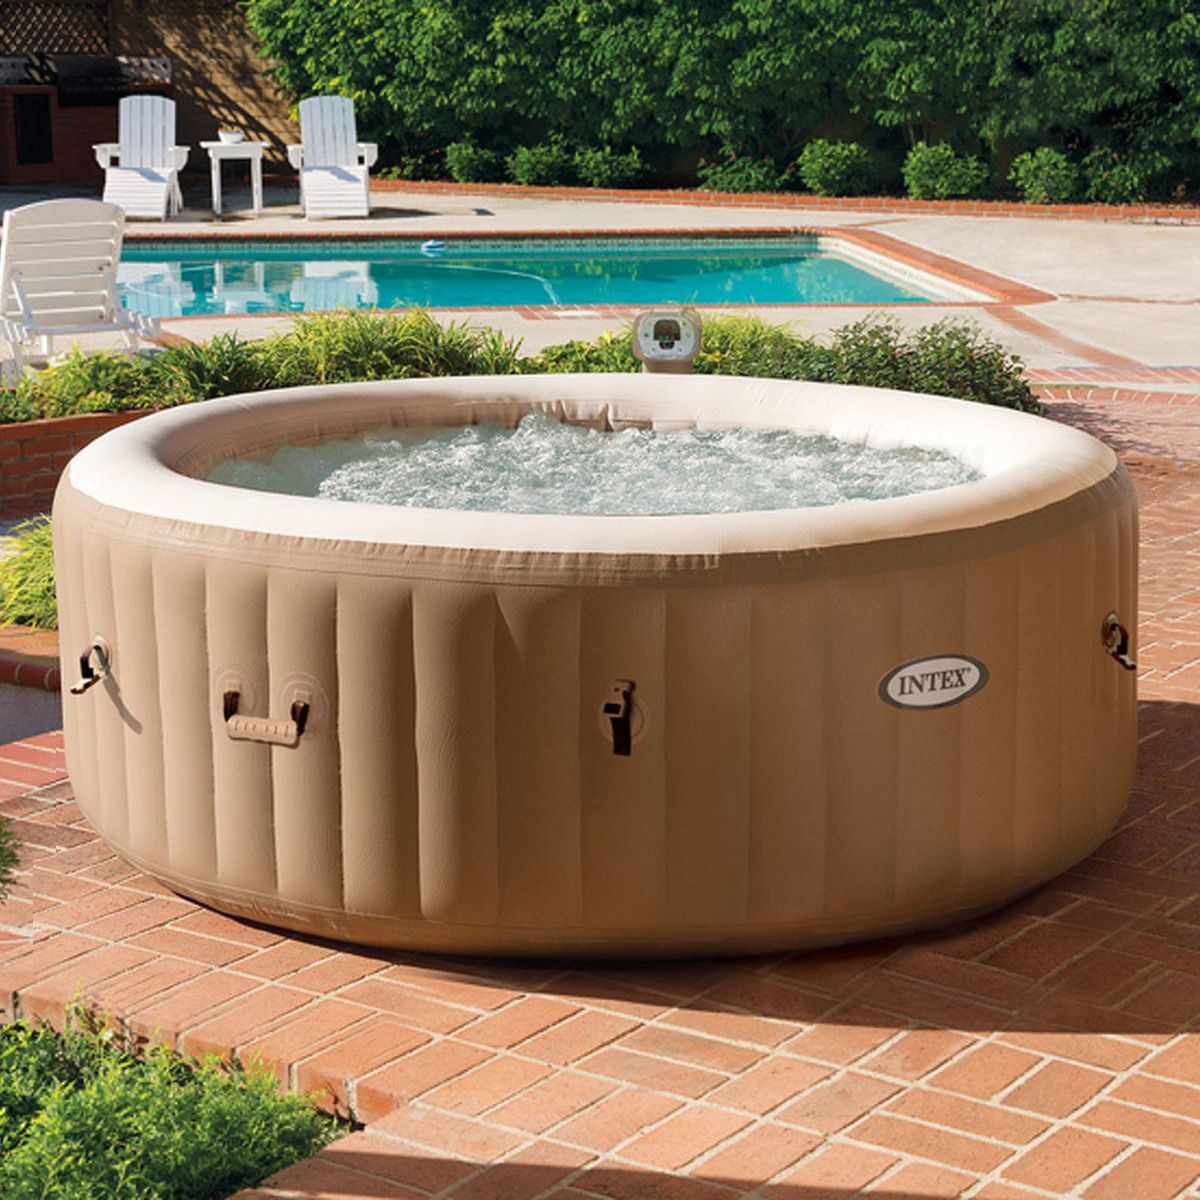 Tips to Clean a Used Hot Tub